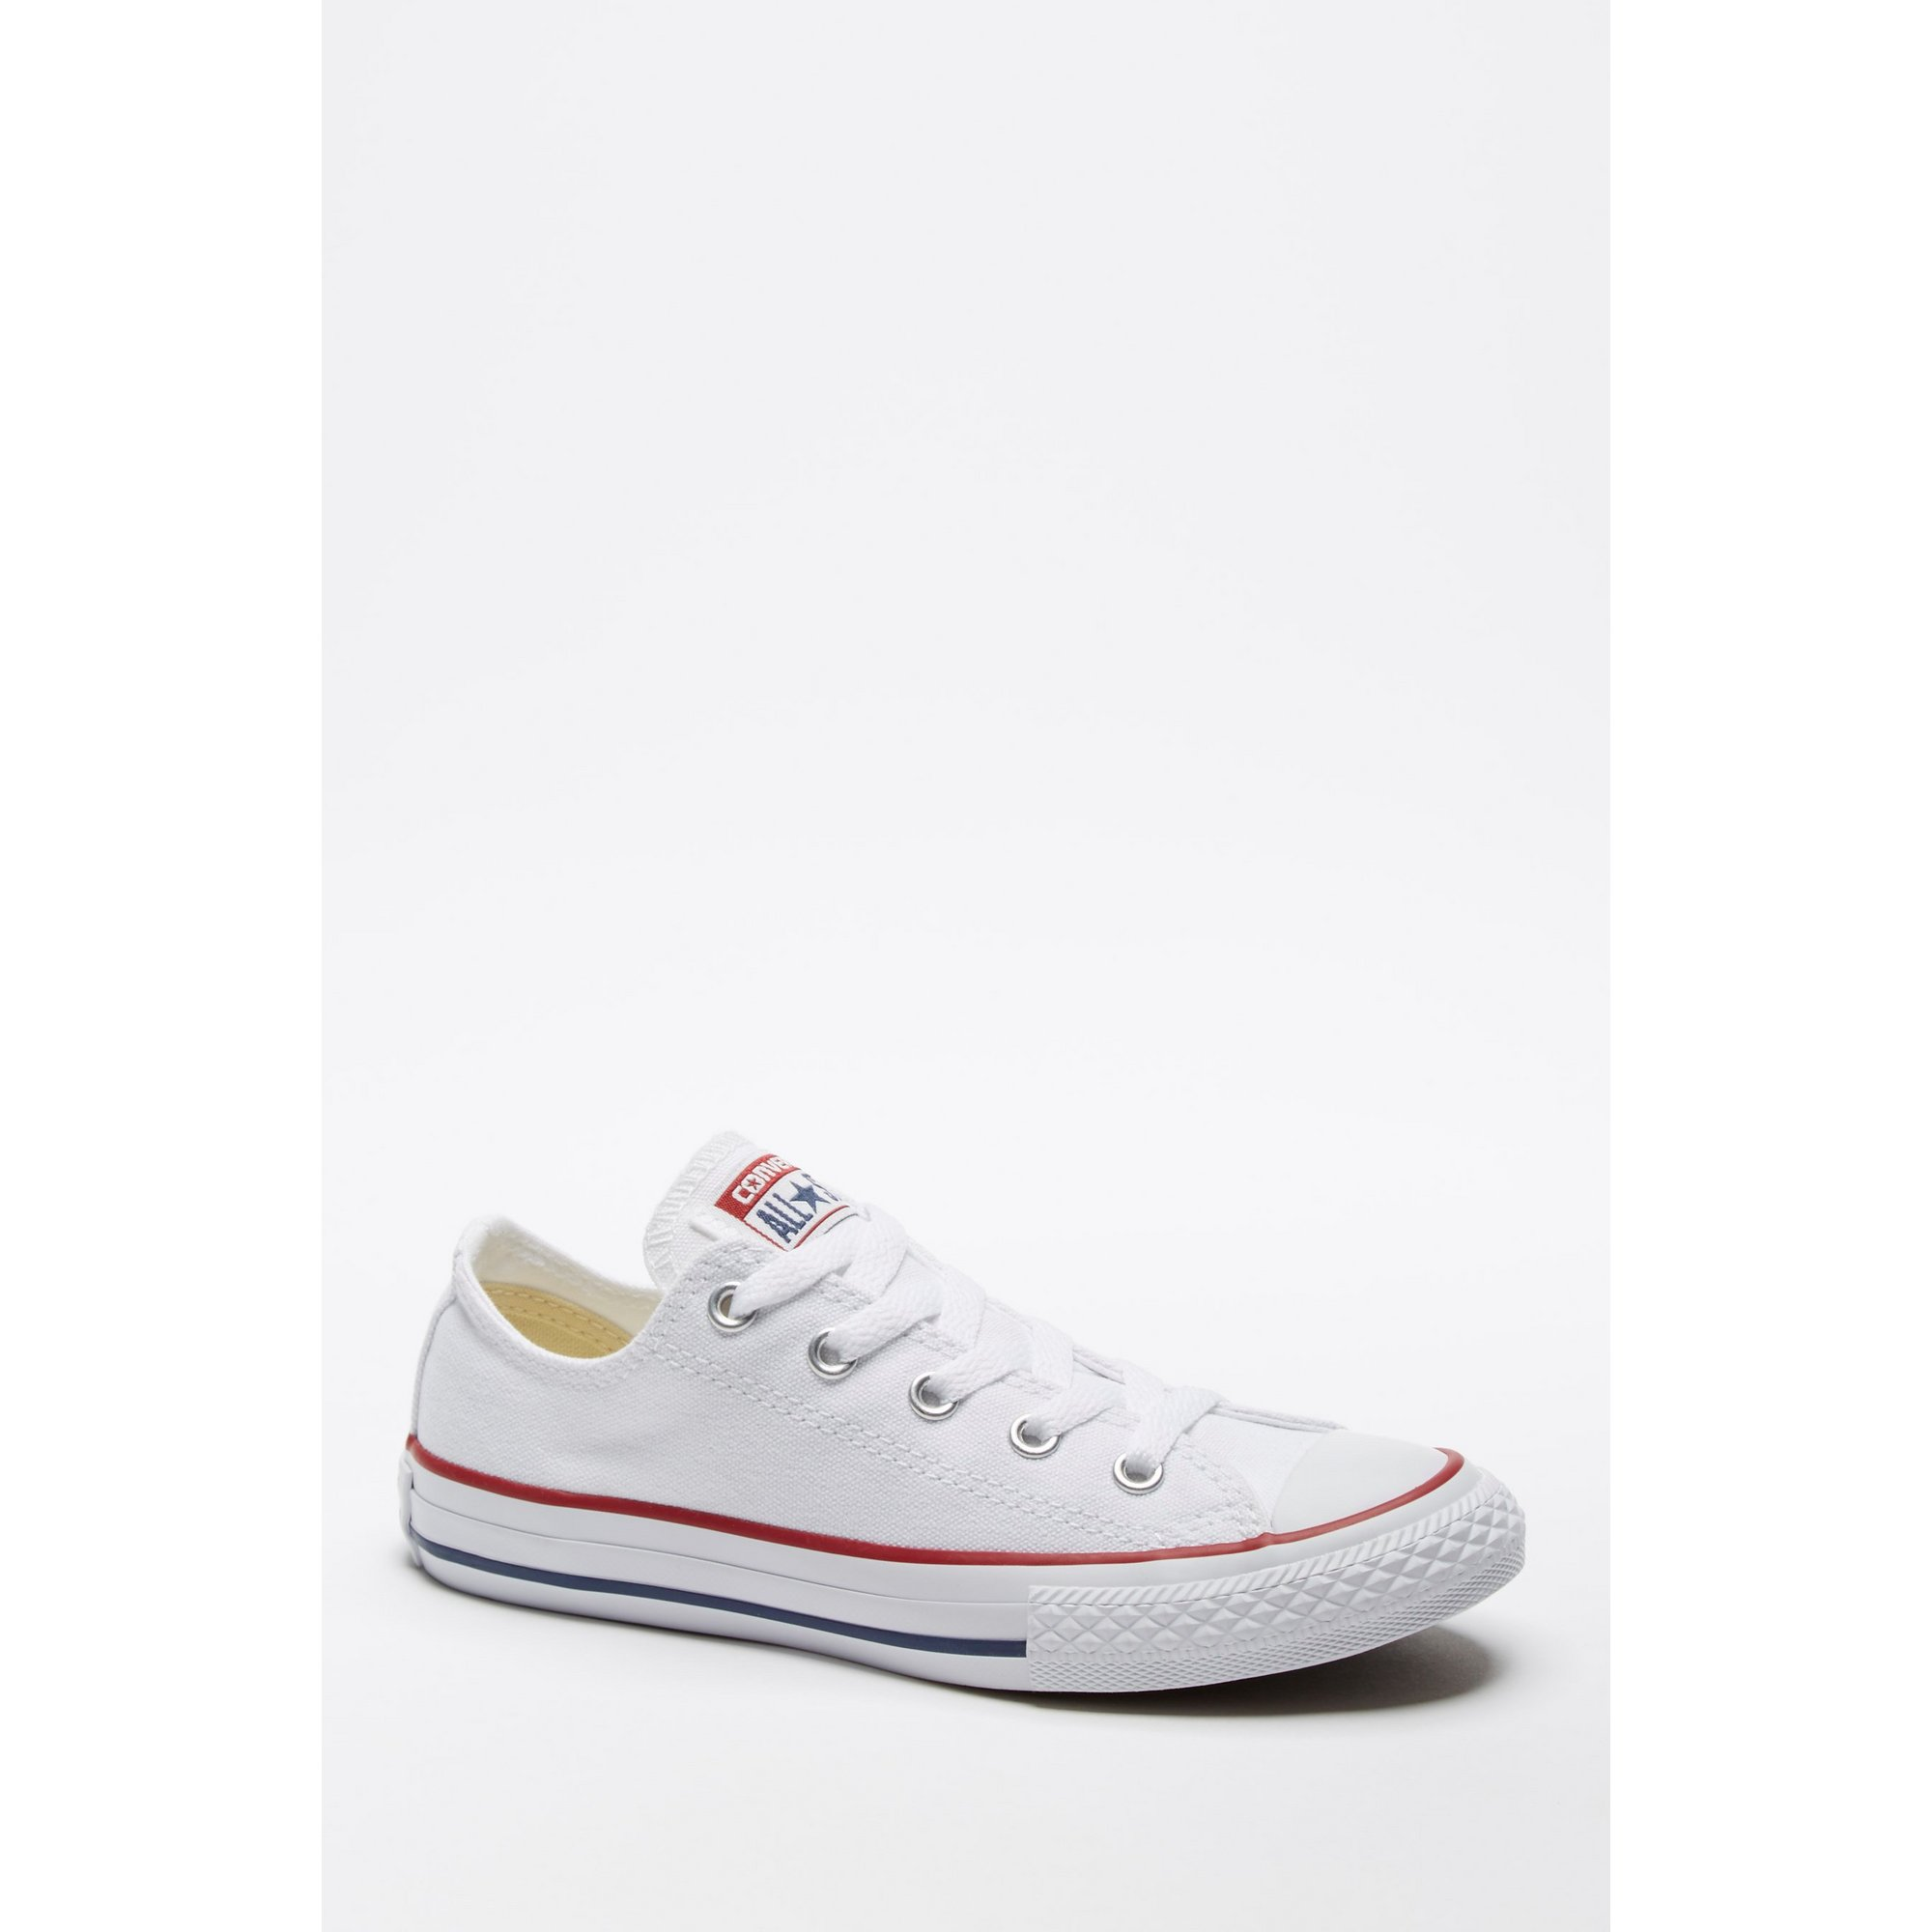 Image of Converse Low Top Junior Trainers